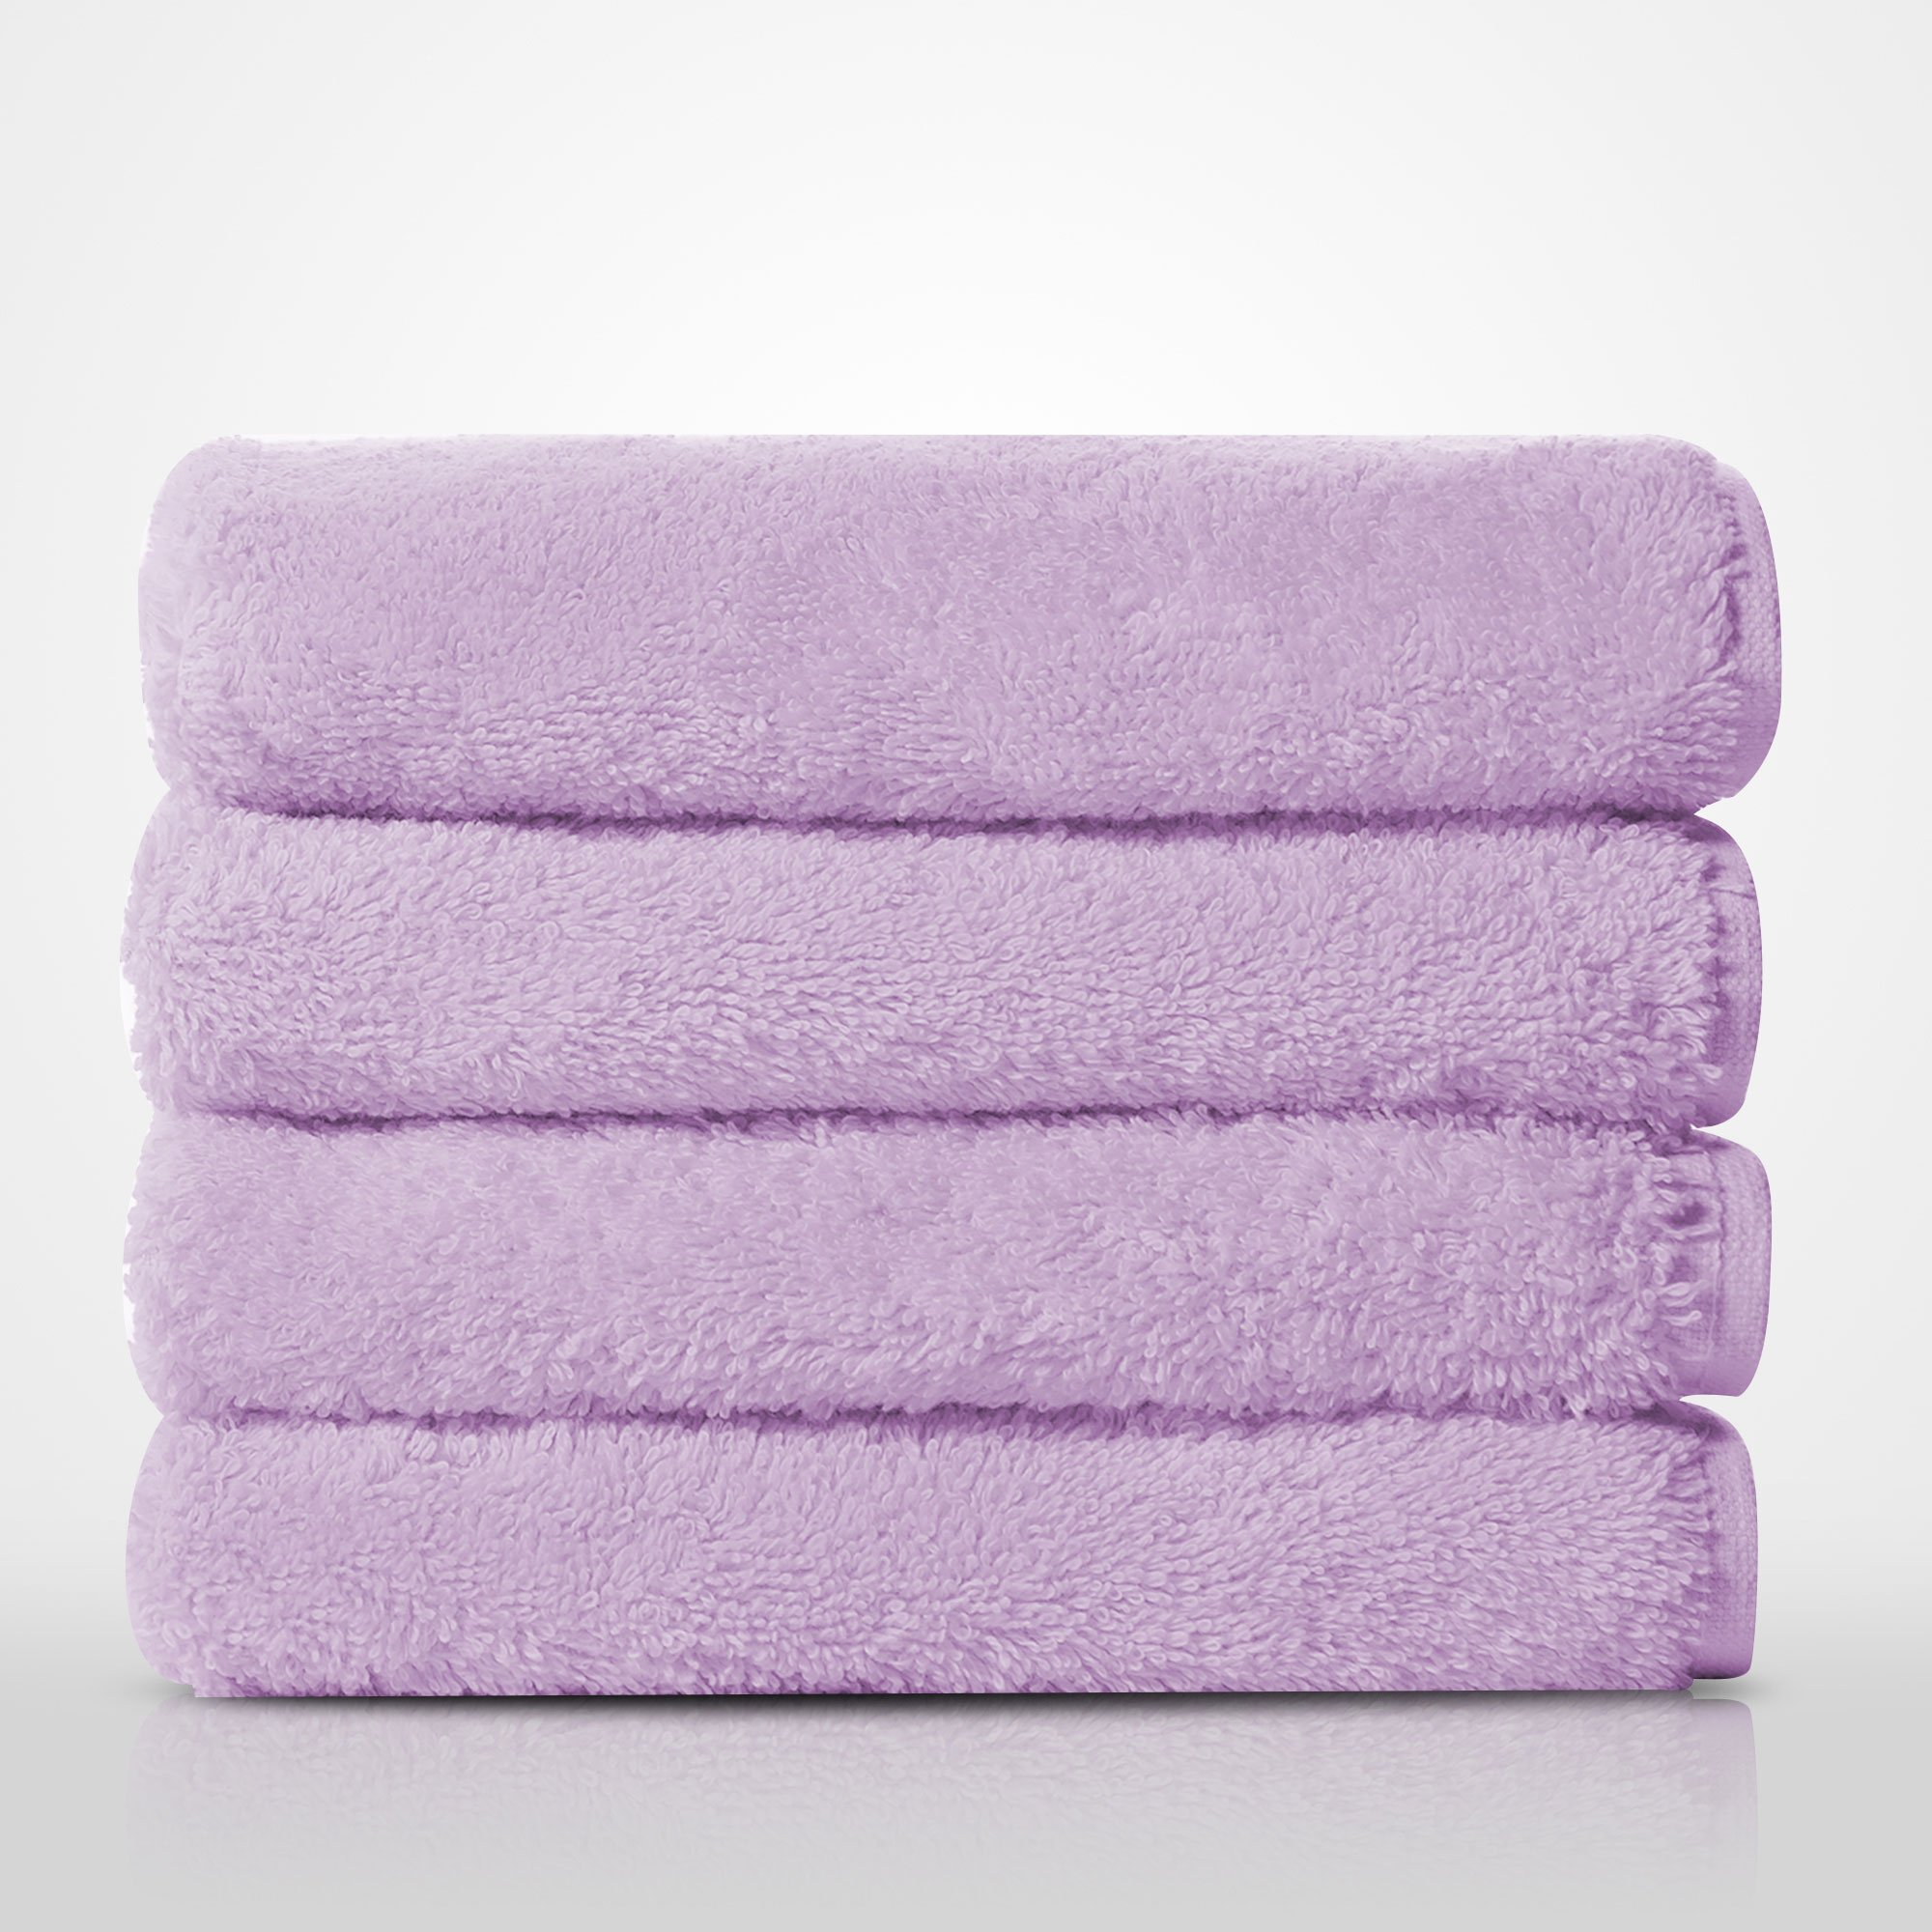 "16"" x 29"" - 100% Turkish Cotton Lavender Terry Hand Towel-Robemart.com"